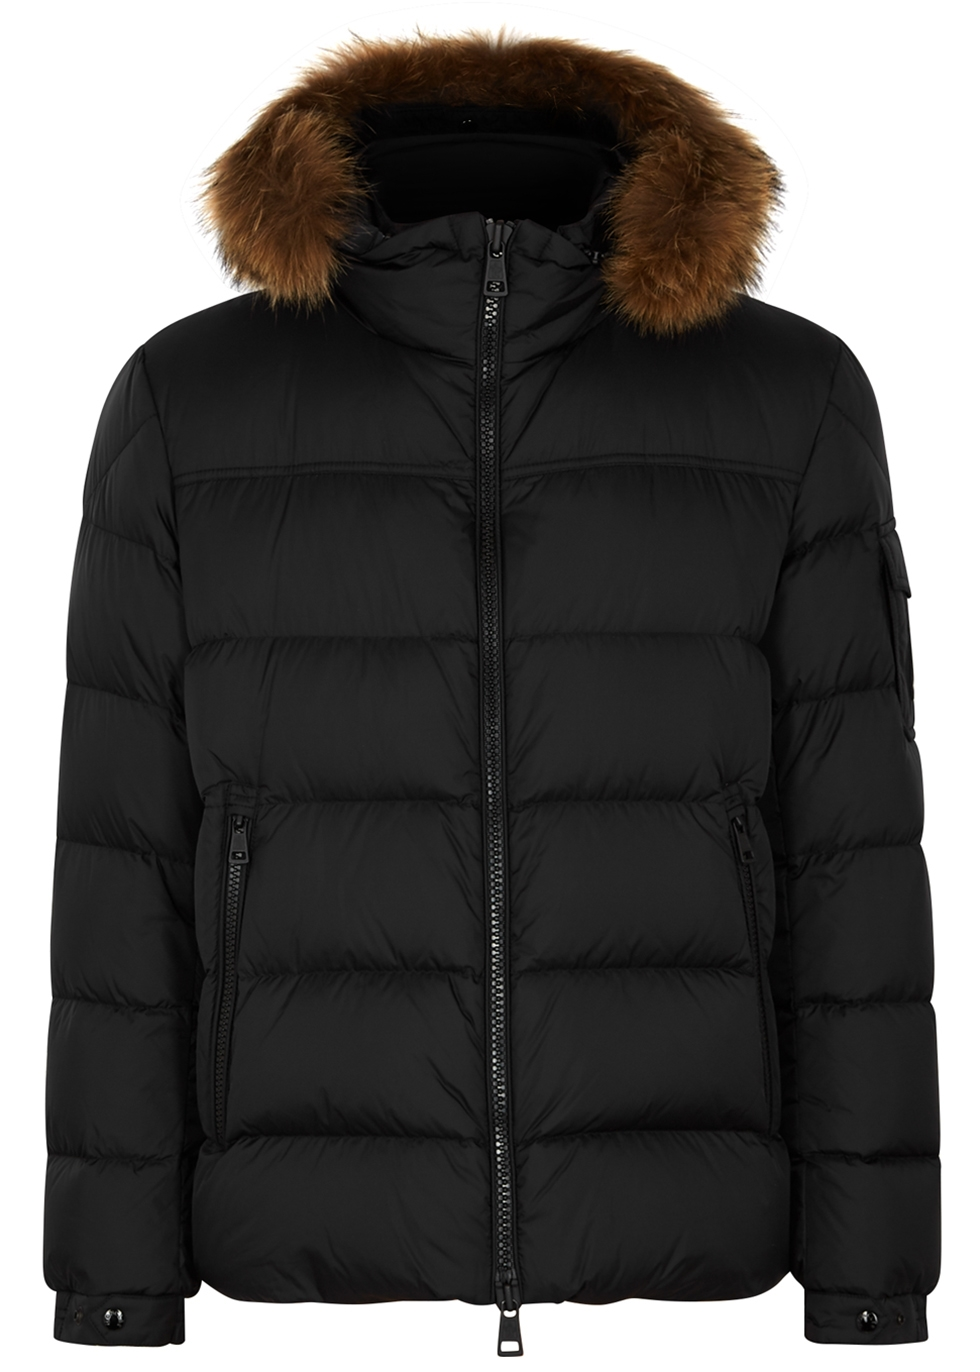 MONCLER MARQUE FUR-TRIMMED SHELL JACKET